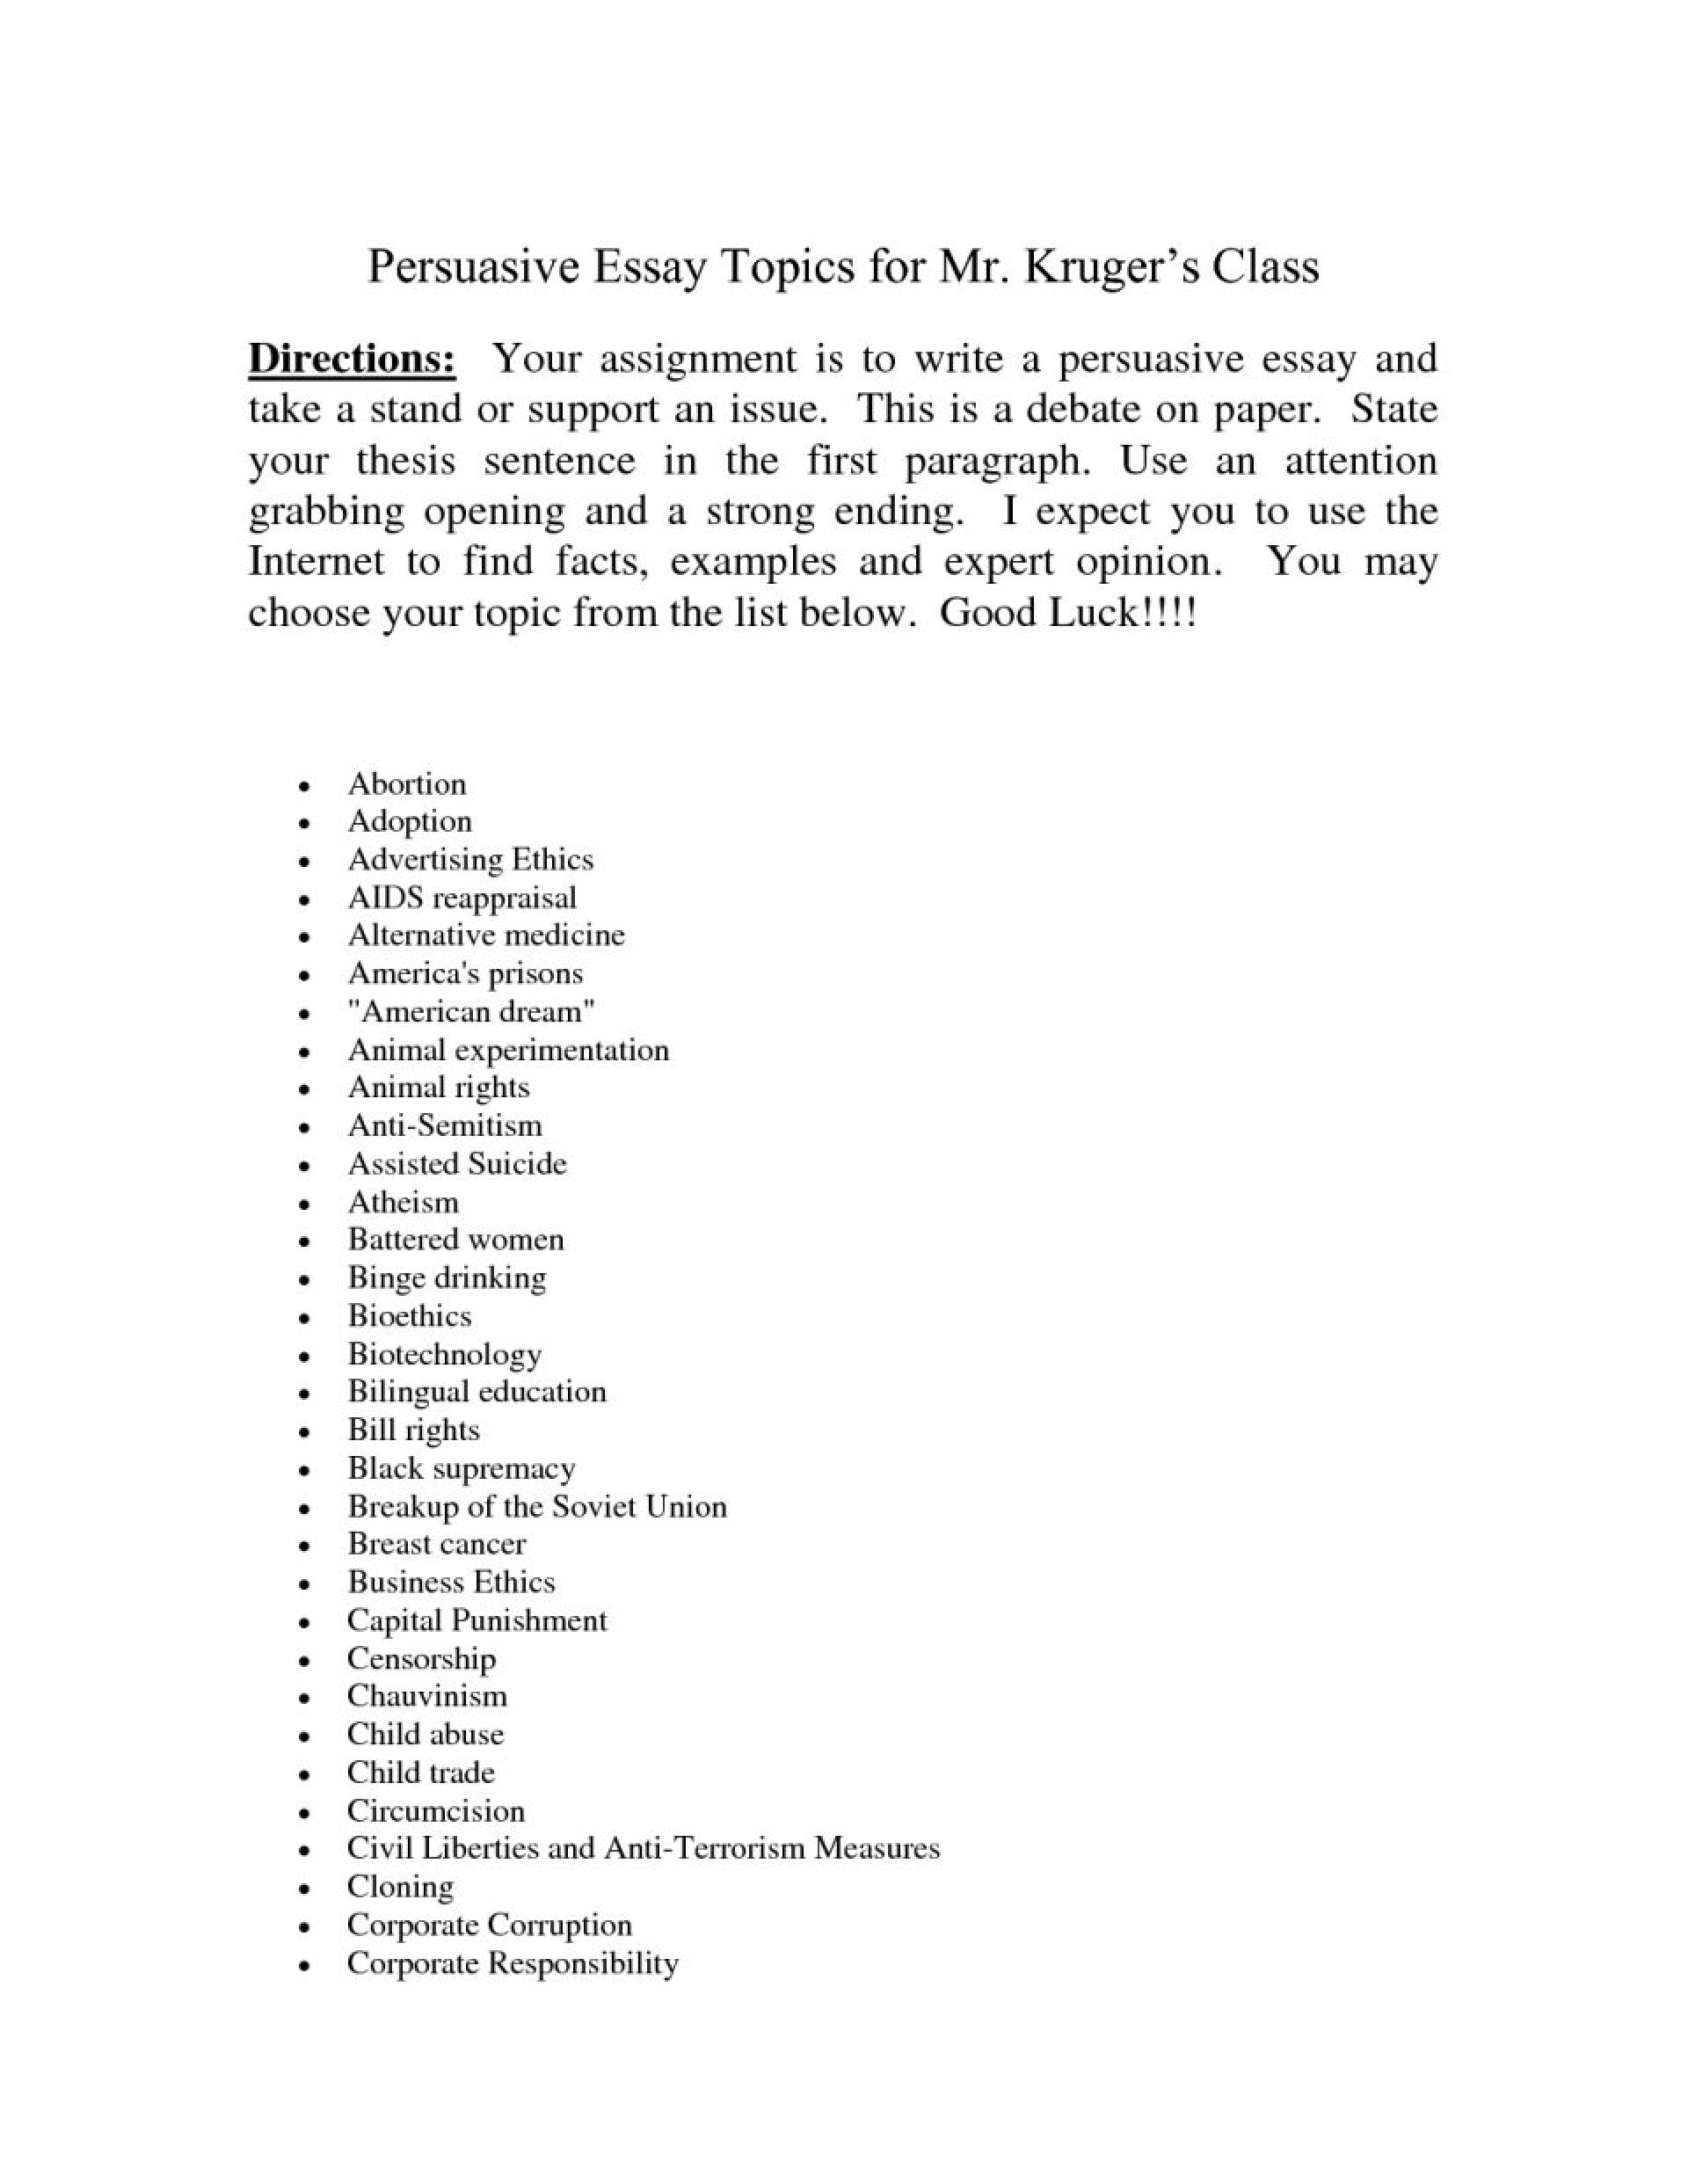 001 Research Paper Topics Topic For Essay Barca Fontanacountryinn Within Good Persuasive Narrative To Write Abo Easy About Personal Descriptive Informative Formidable 2017 Accounting In Computer Science 1920